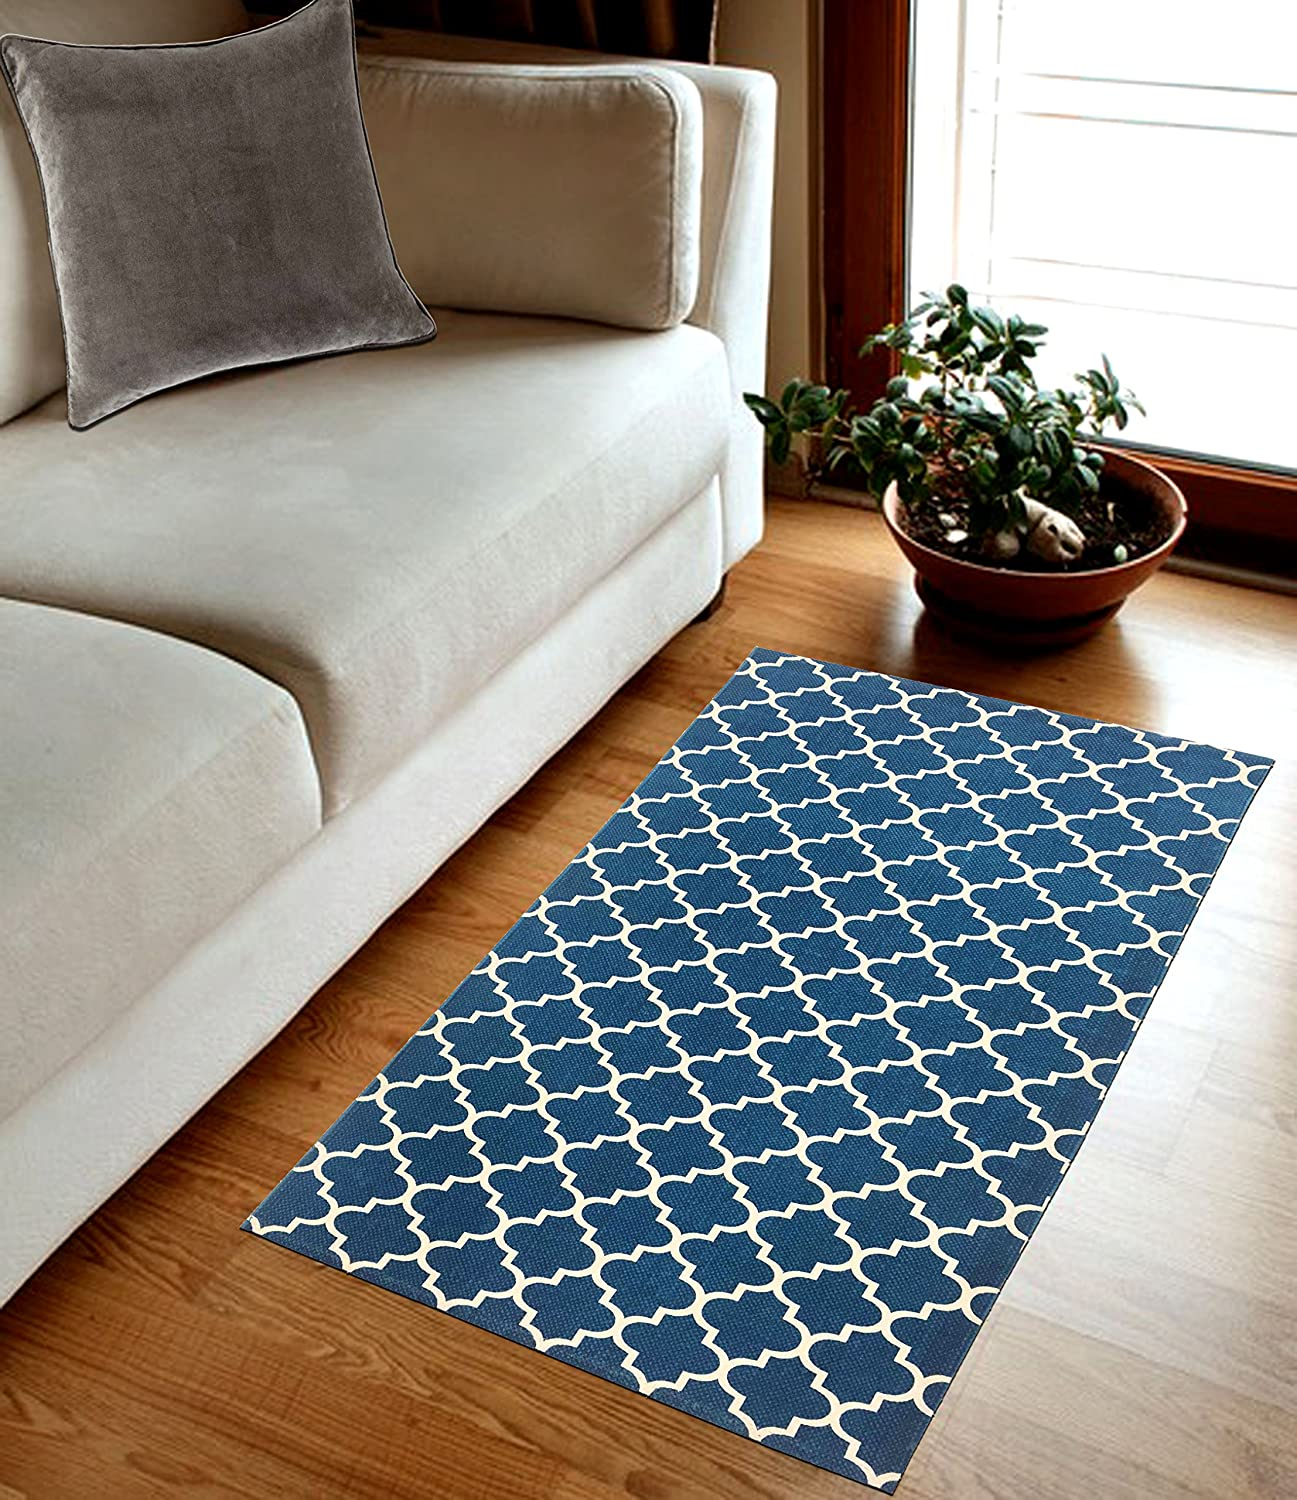 Home & Garden Area Rugs altany-zadaszenia.pl 27 x 45 Inches, Teal ...